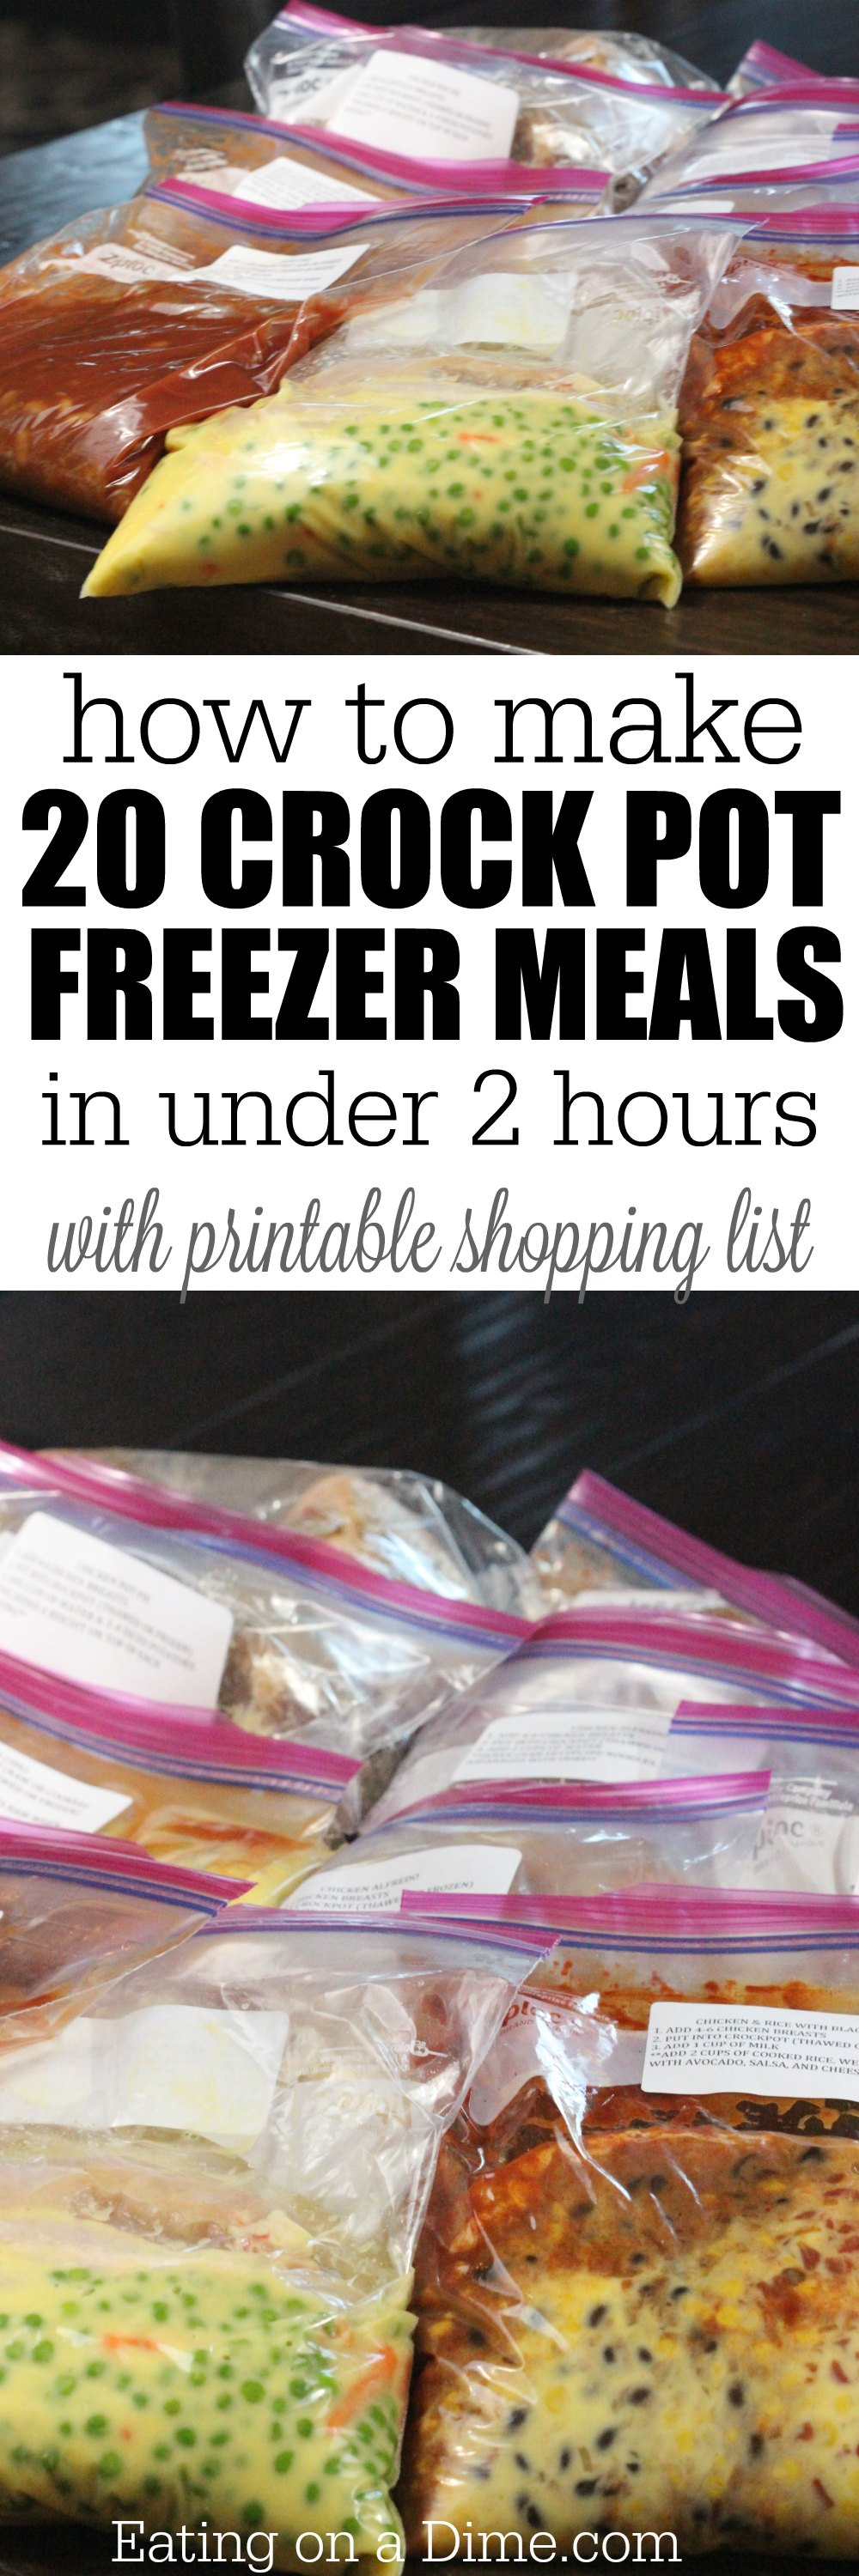 Making crock pot freezer meals saves time and saves money. These are the best crock pot freezer meals that are kid friendly and easy to make in under a hour. These make ahead crock pot recipes are easy, healthy and comes with a shopping list. You are going to love these chicken and beef crock pot recipes! #eatingonadime #crockpotrecipes #freezerrecipes